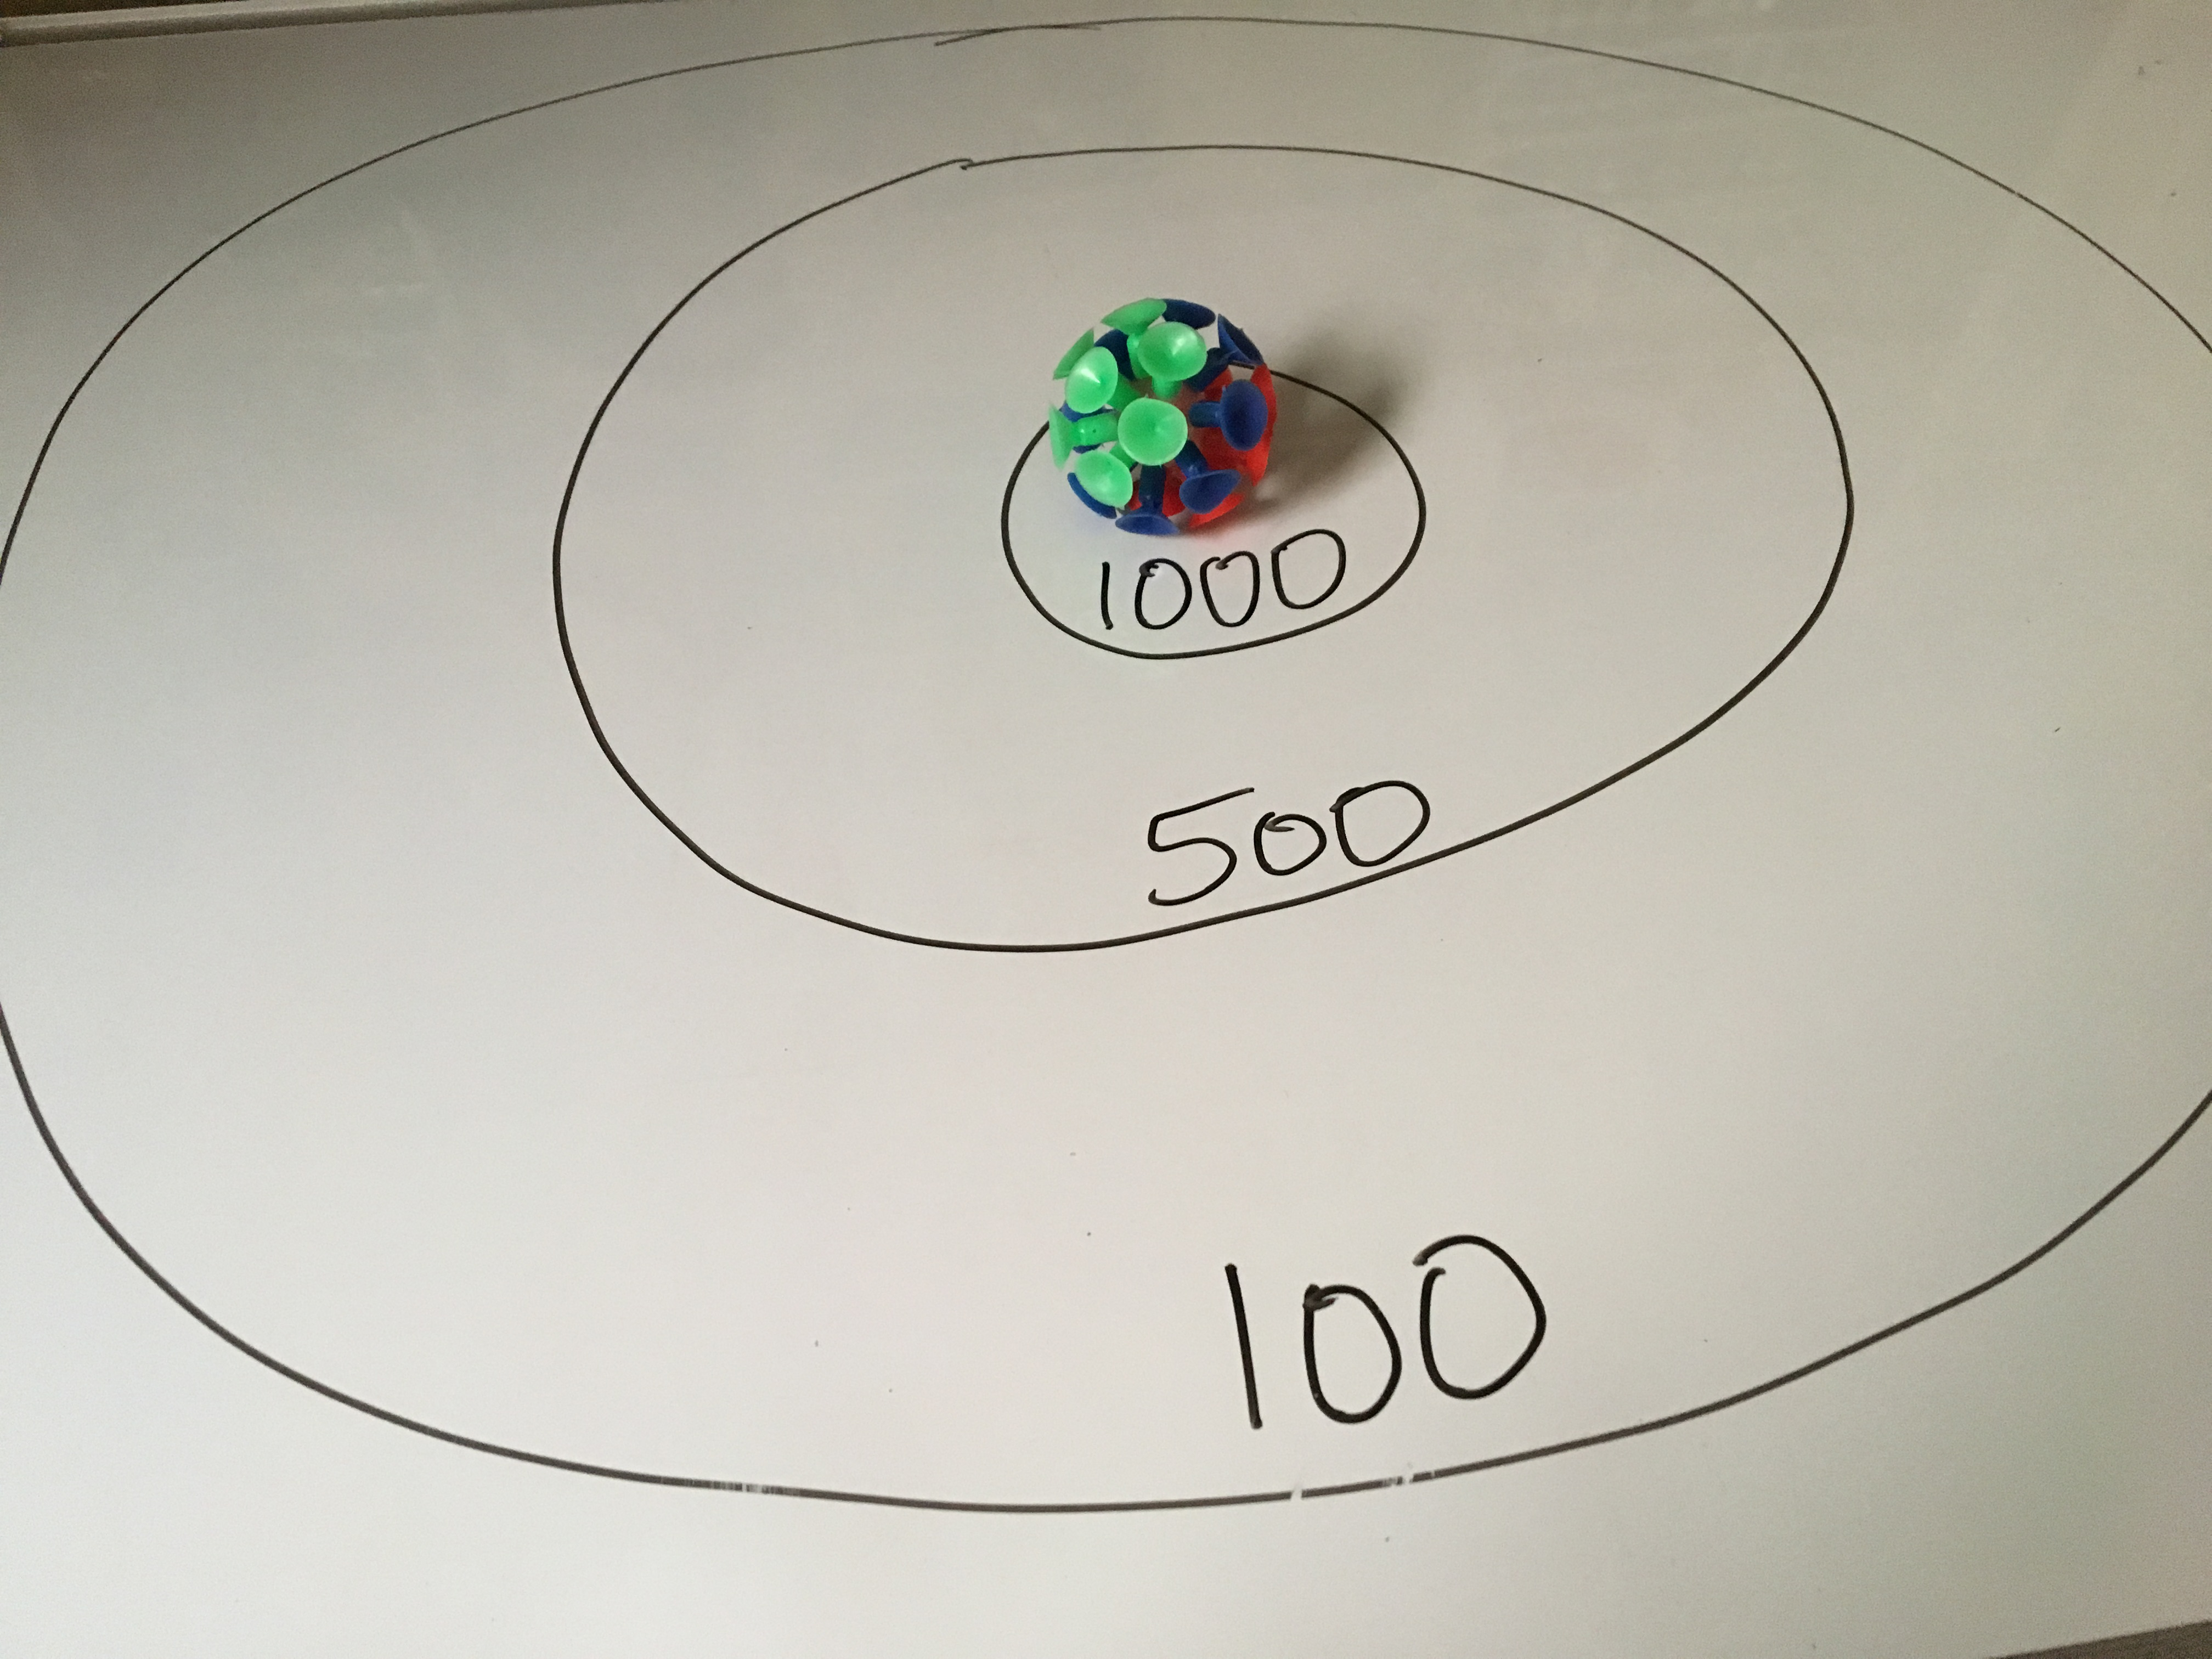 hight resolution of Math Review Game Strategy That Works: The Target Game - Idea Galaxy